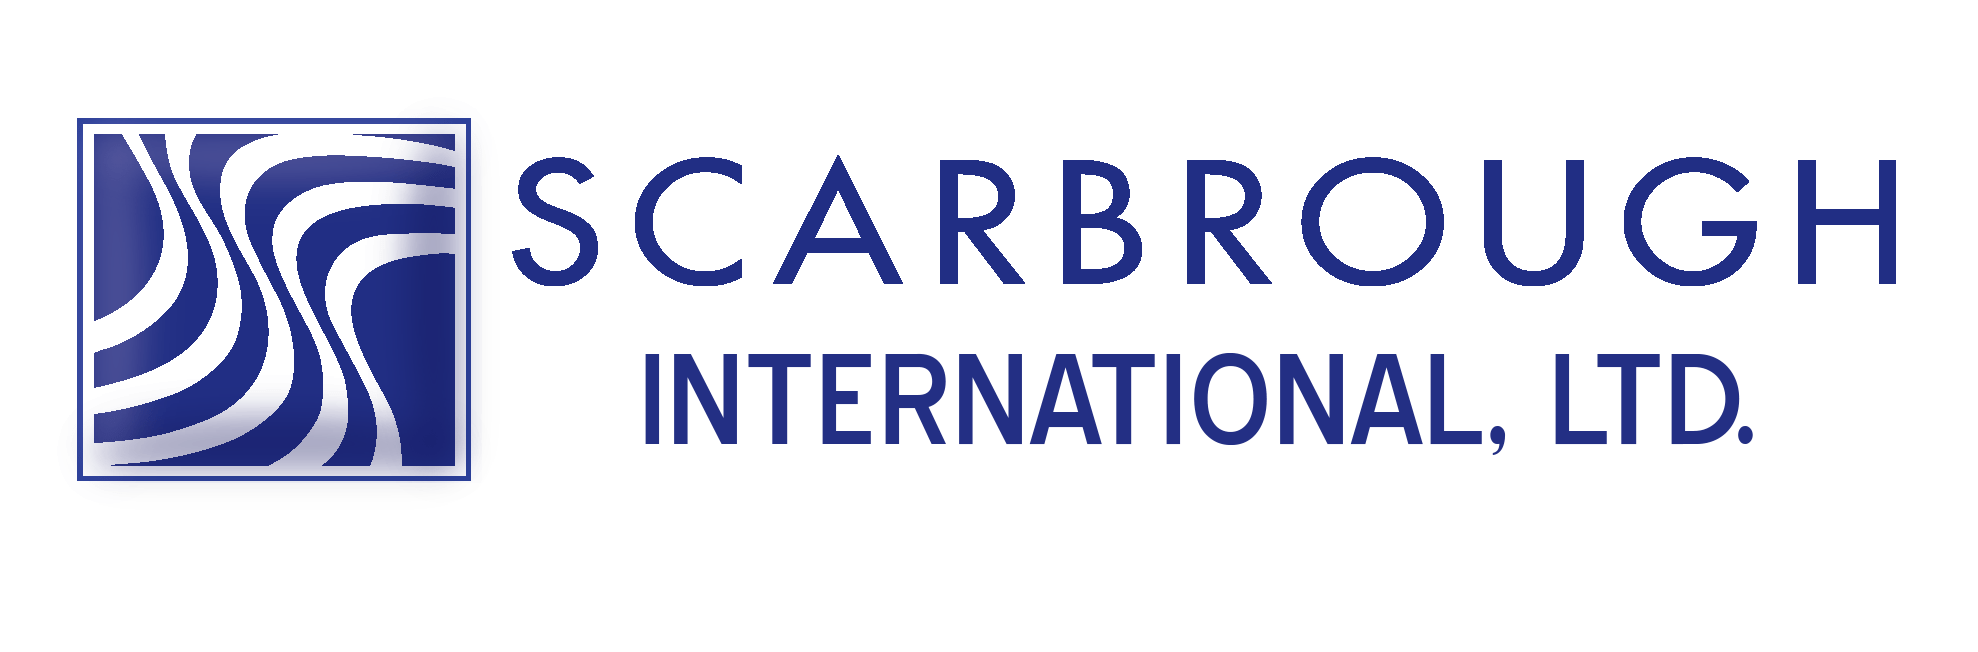 01 Scarbrough International Ltd